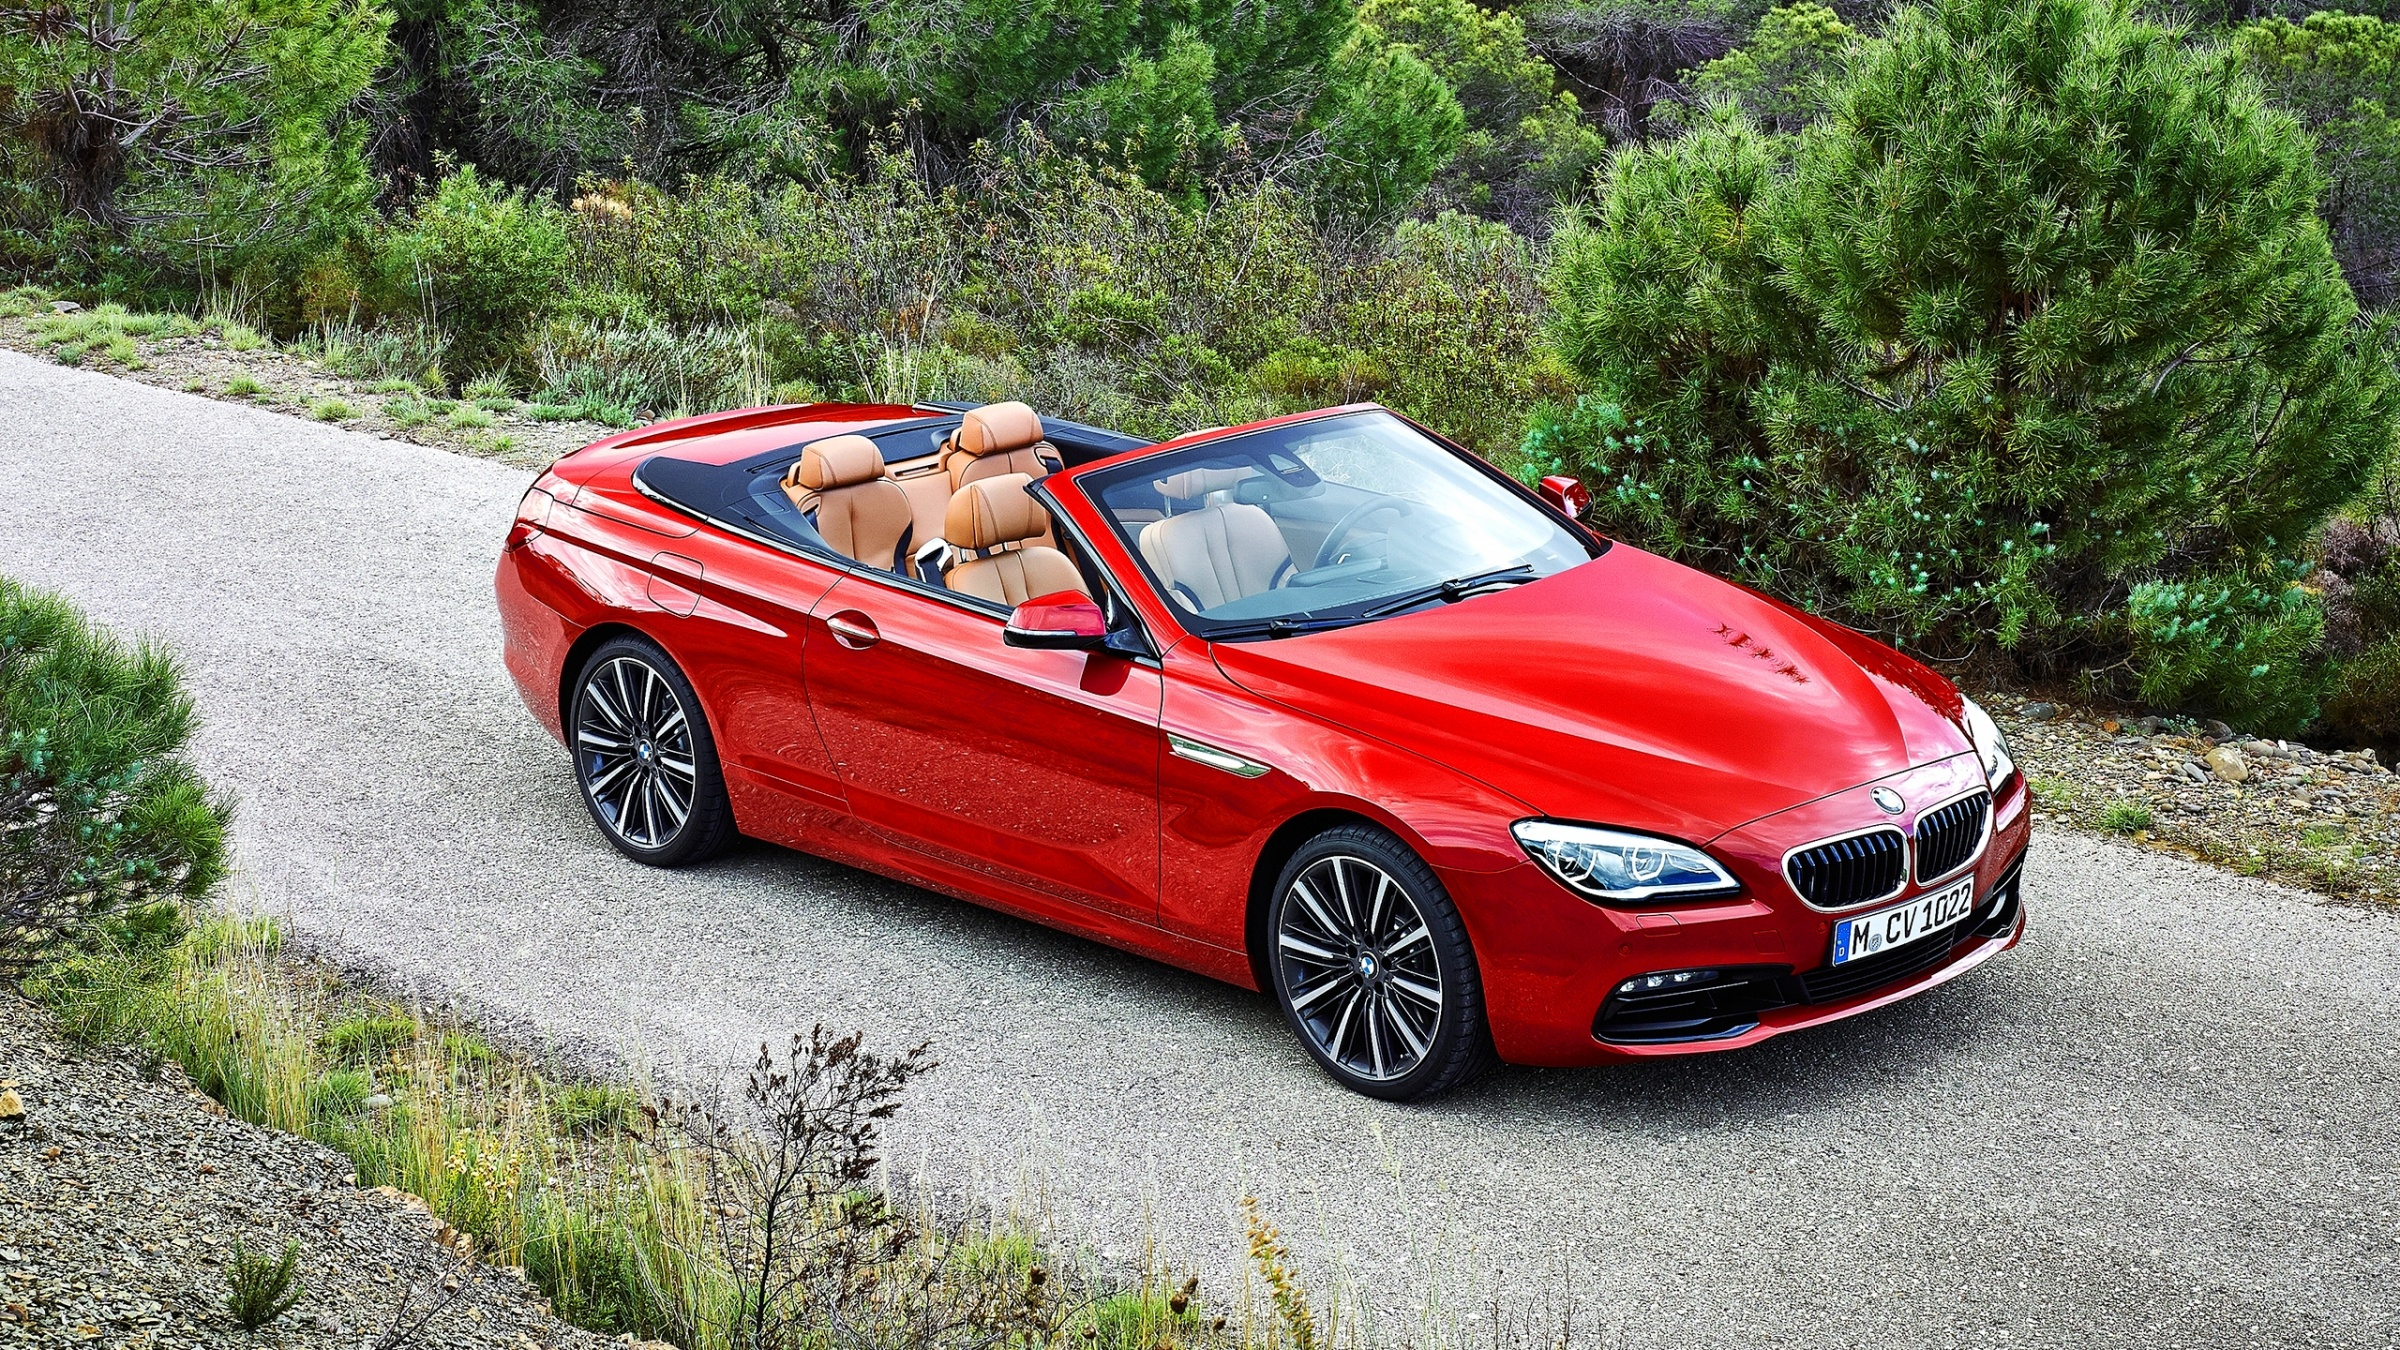 BMW M6 Convertible 2015 Wallpapers - 2400x1350 - 2479963